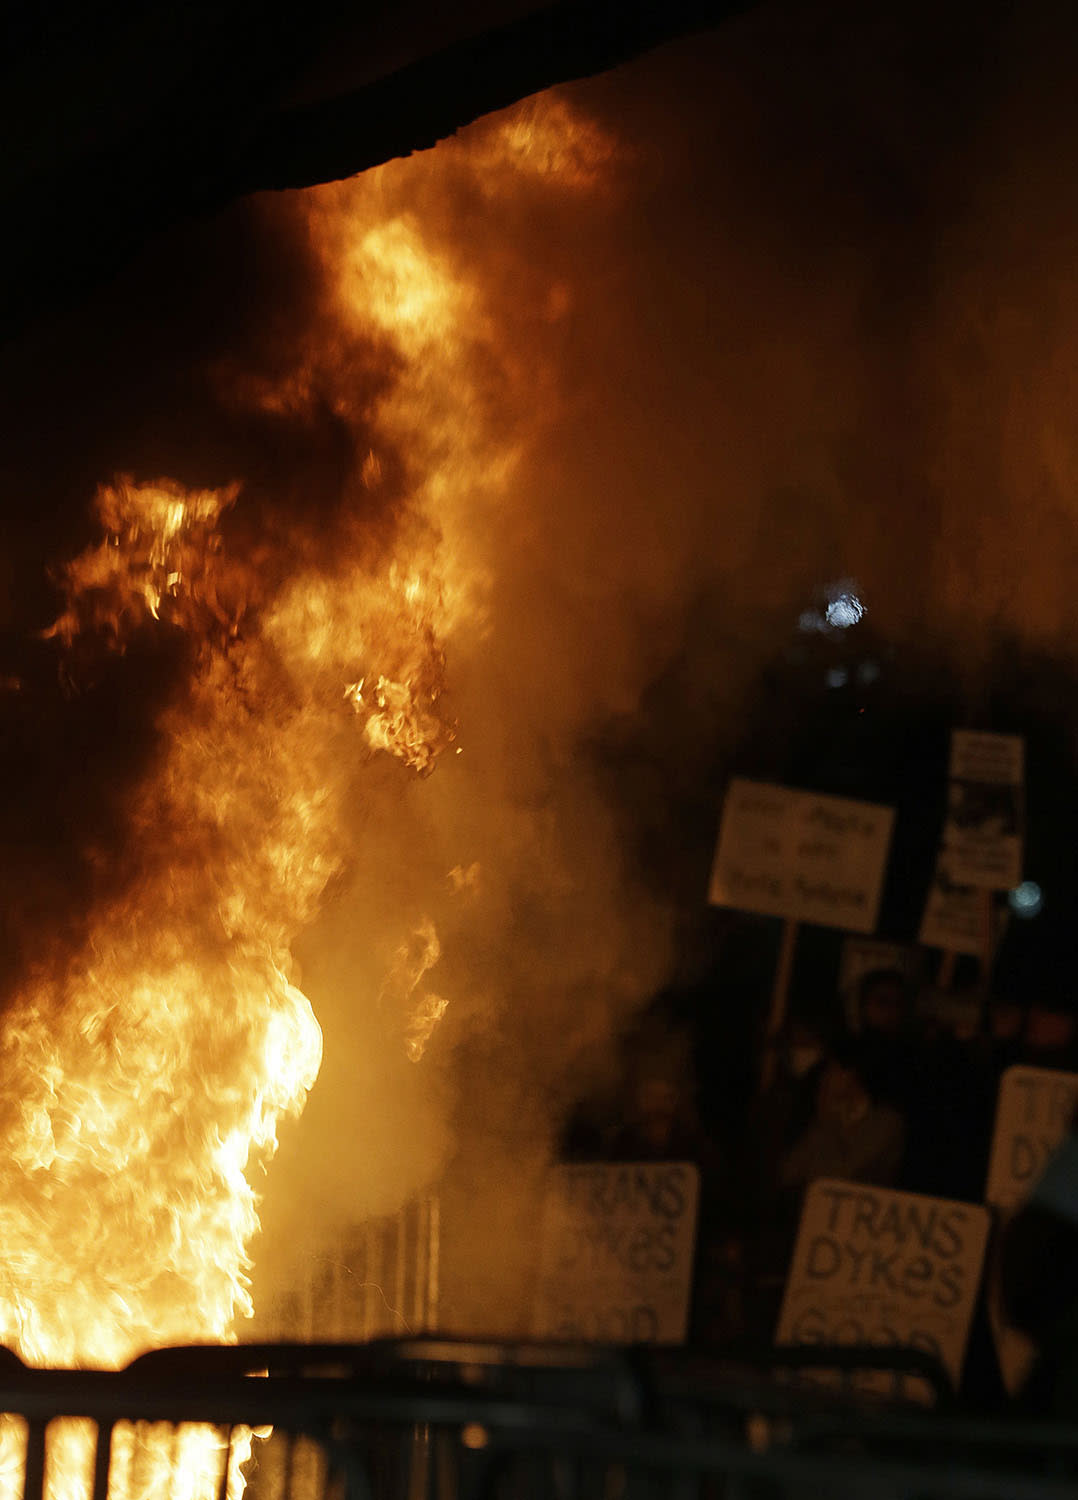 <p>Protesters watch a bonfire on Sproul Plaza during a rally against the scheduled speaking appearance by Breitbart News editor Milo Yiannopoulos on the University of California at Berkeley campus on Feb. 2, 2017, in Berkeley, Calif. (Photo: Ben Margot/AP) </p>